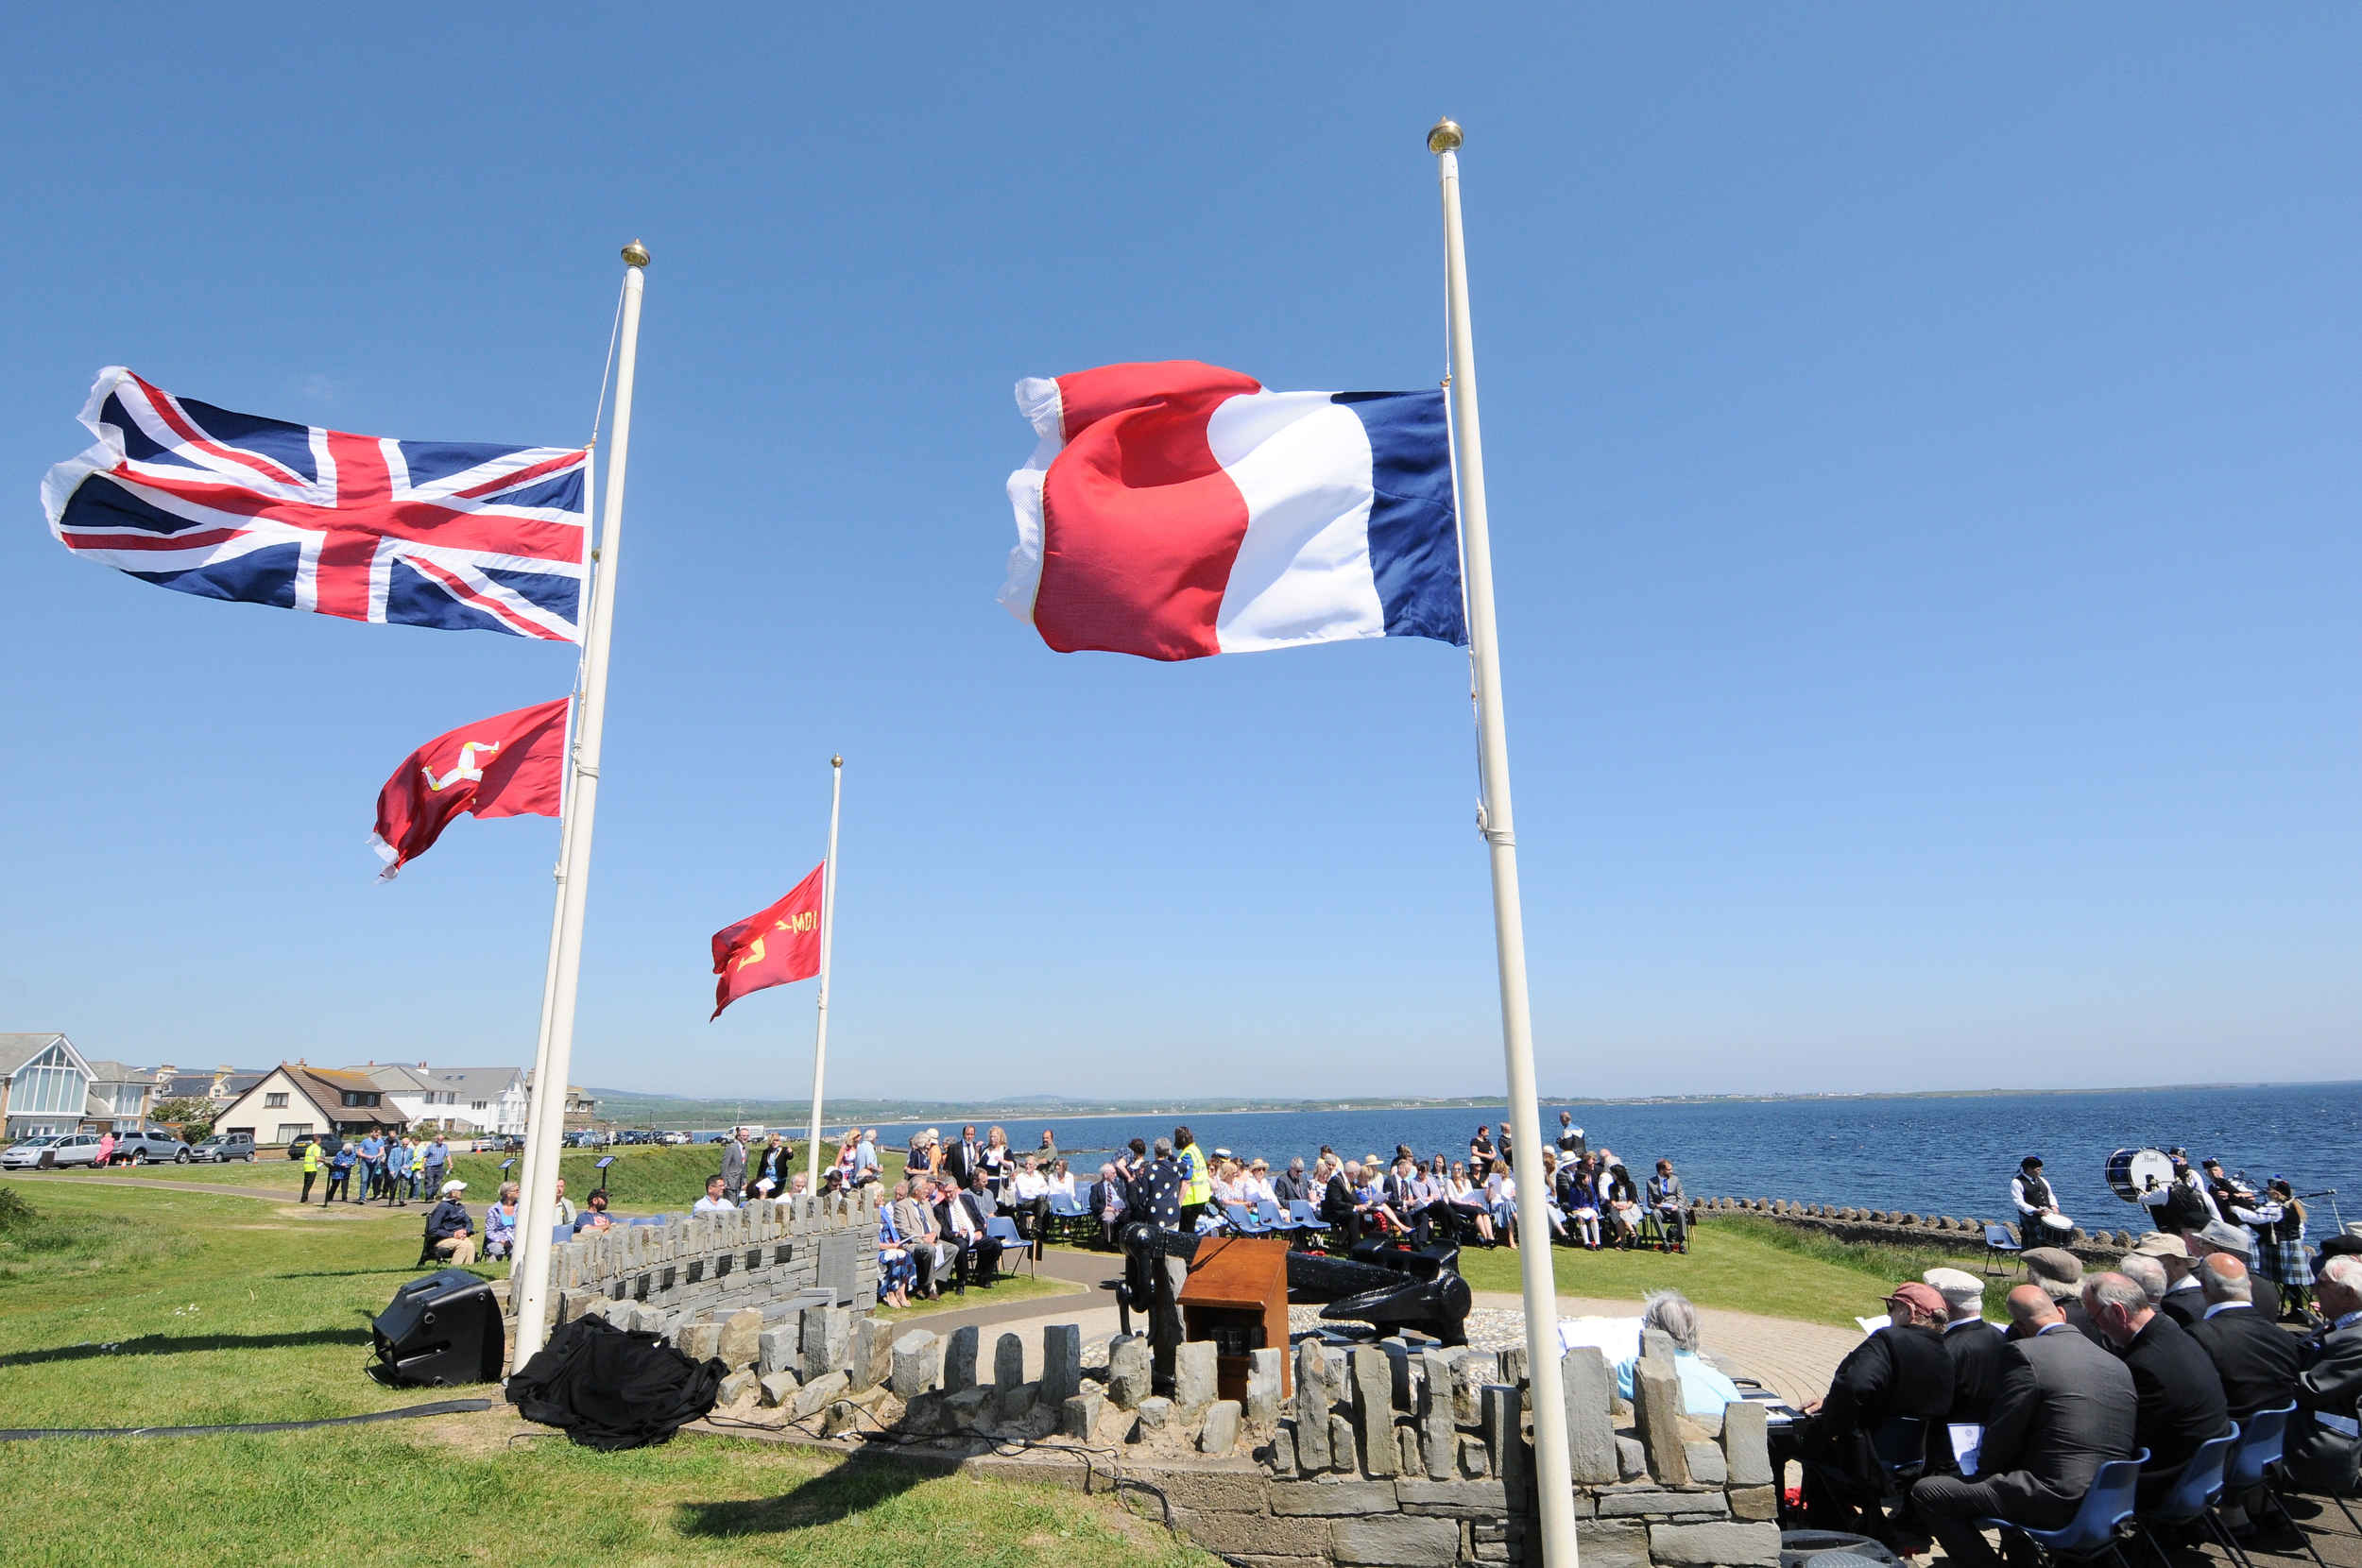 A service to remember the contribution of the Isle of Man Steam Packet Company to the Dunkirk evacuation, at the site of the recovered anchor from the Mona's Queen III, which was destroyed by a mine on May 29, 1940